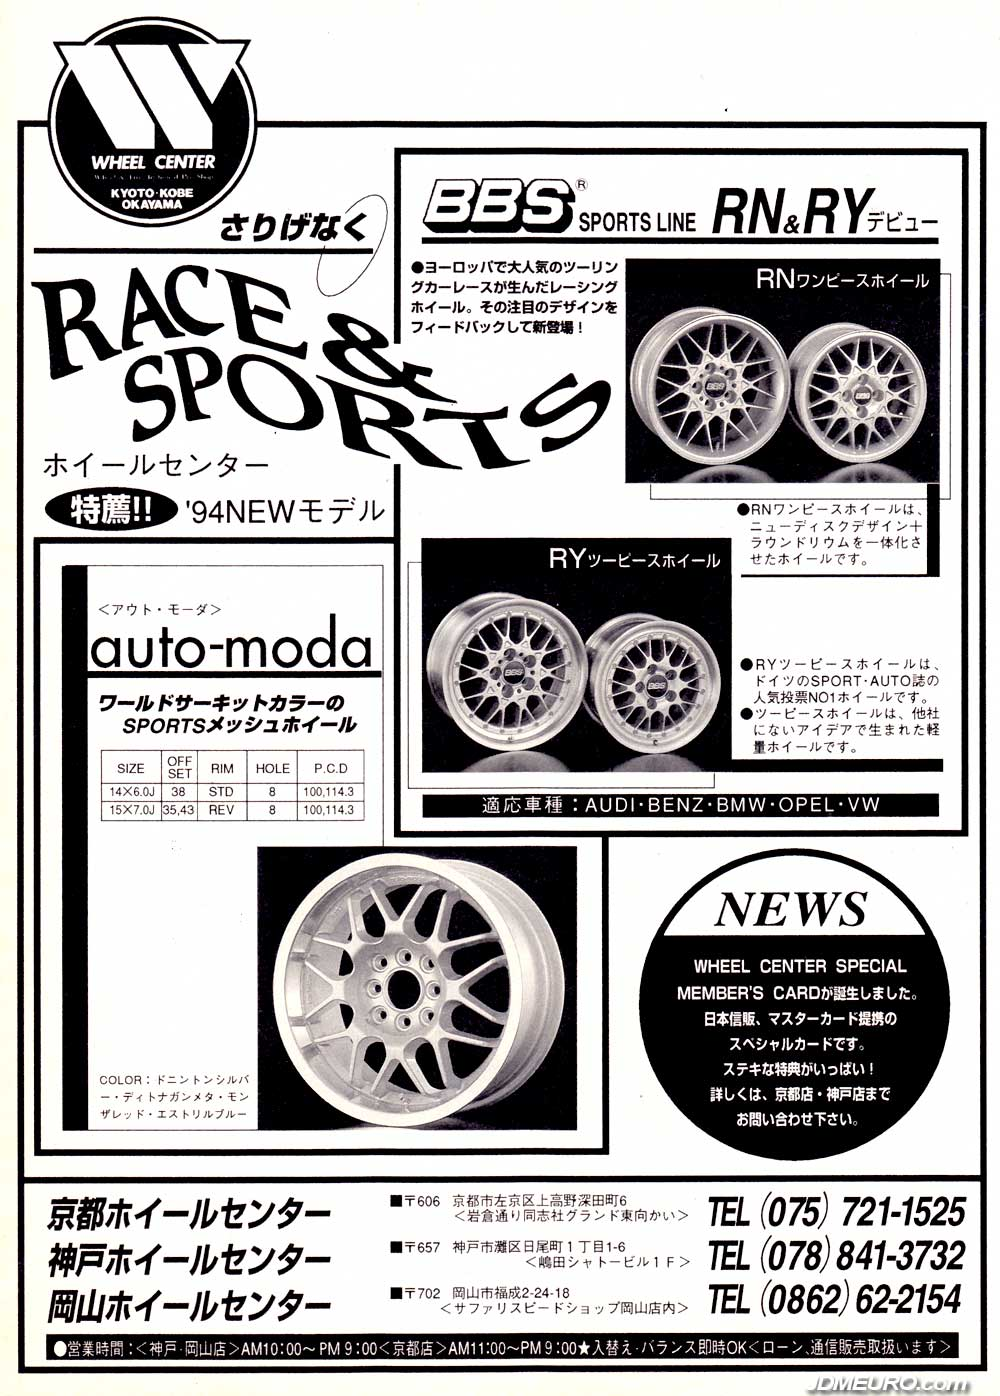 The BBS RN Wheels and BBS RY Wheels are JDM Wheels made in Japan by BBS Wheels. The BBS RN are double 10 spoke mesh wheels and feature one piece construction. The BBS RY are two piece wheels, and also feature a double 10 spoke mesh design. Most people associate BBS Wheels as being made in Germany, but as a certain point started manufactureg some of thier aftermarket wheels in Japan. Also Pictured are Auto-Moda Wheels.